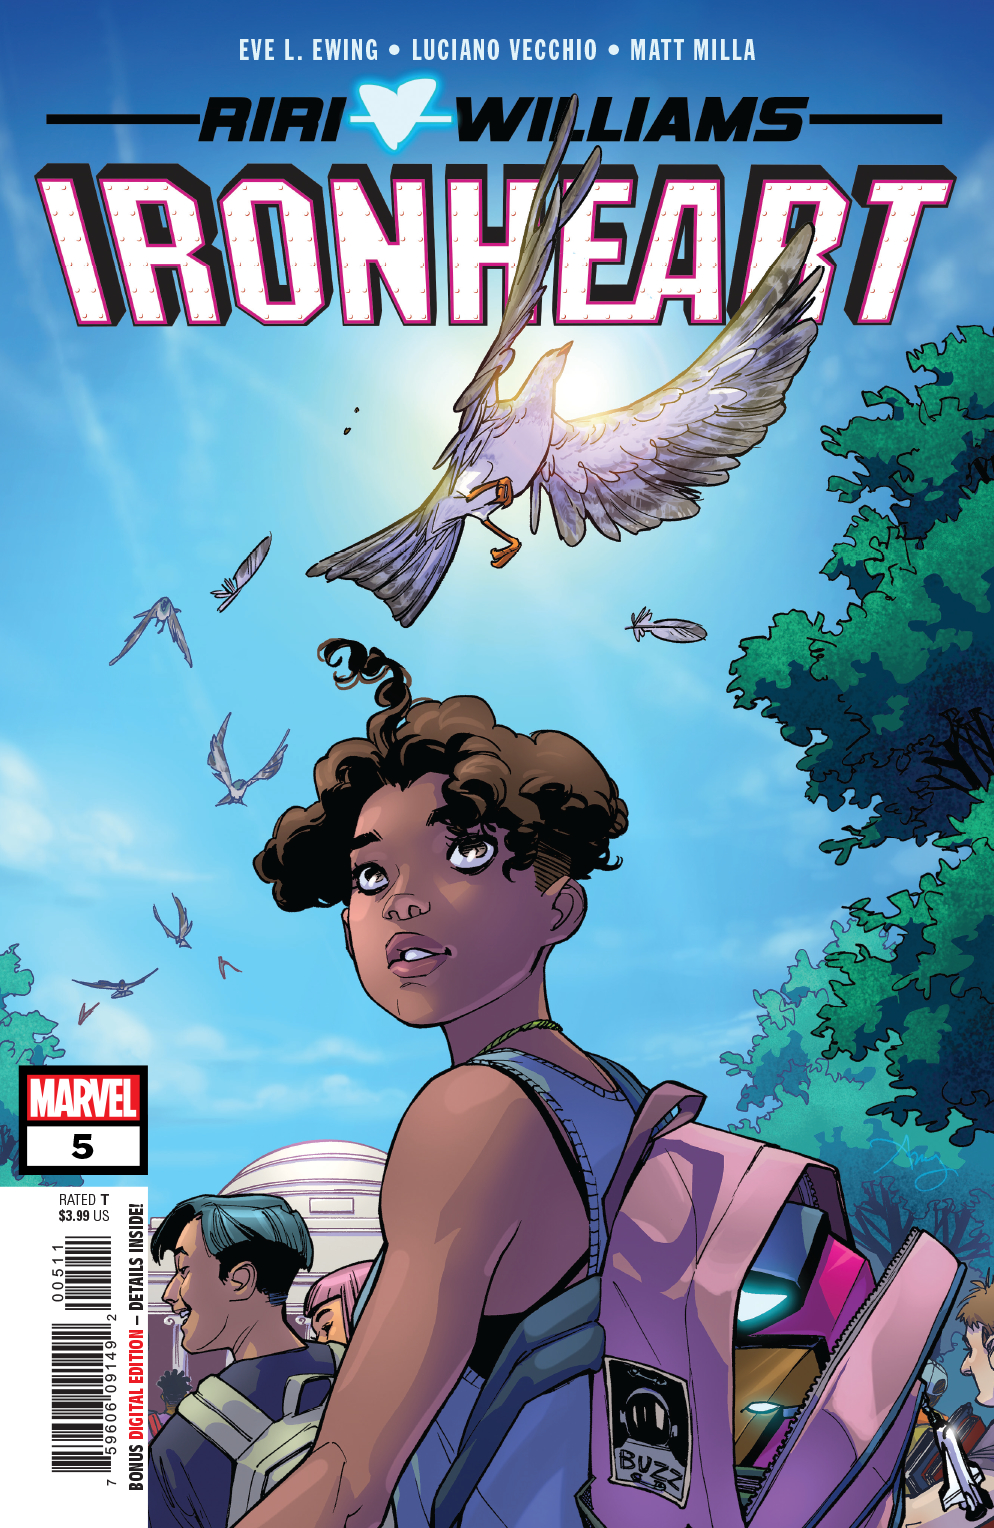 Ironheart #5. Cover by Amy Reeder.